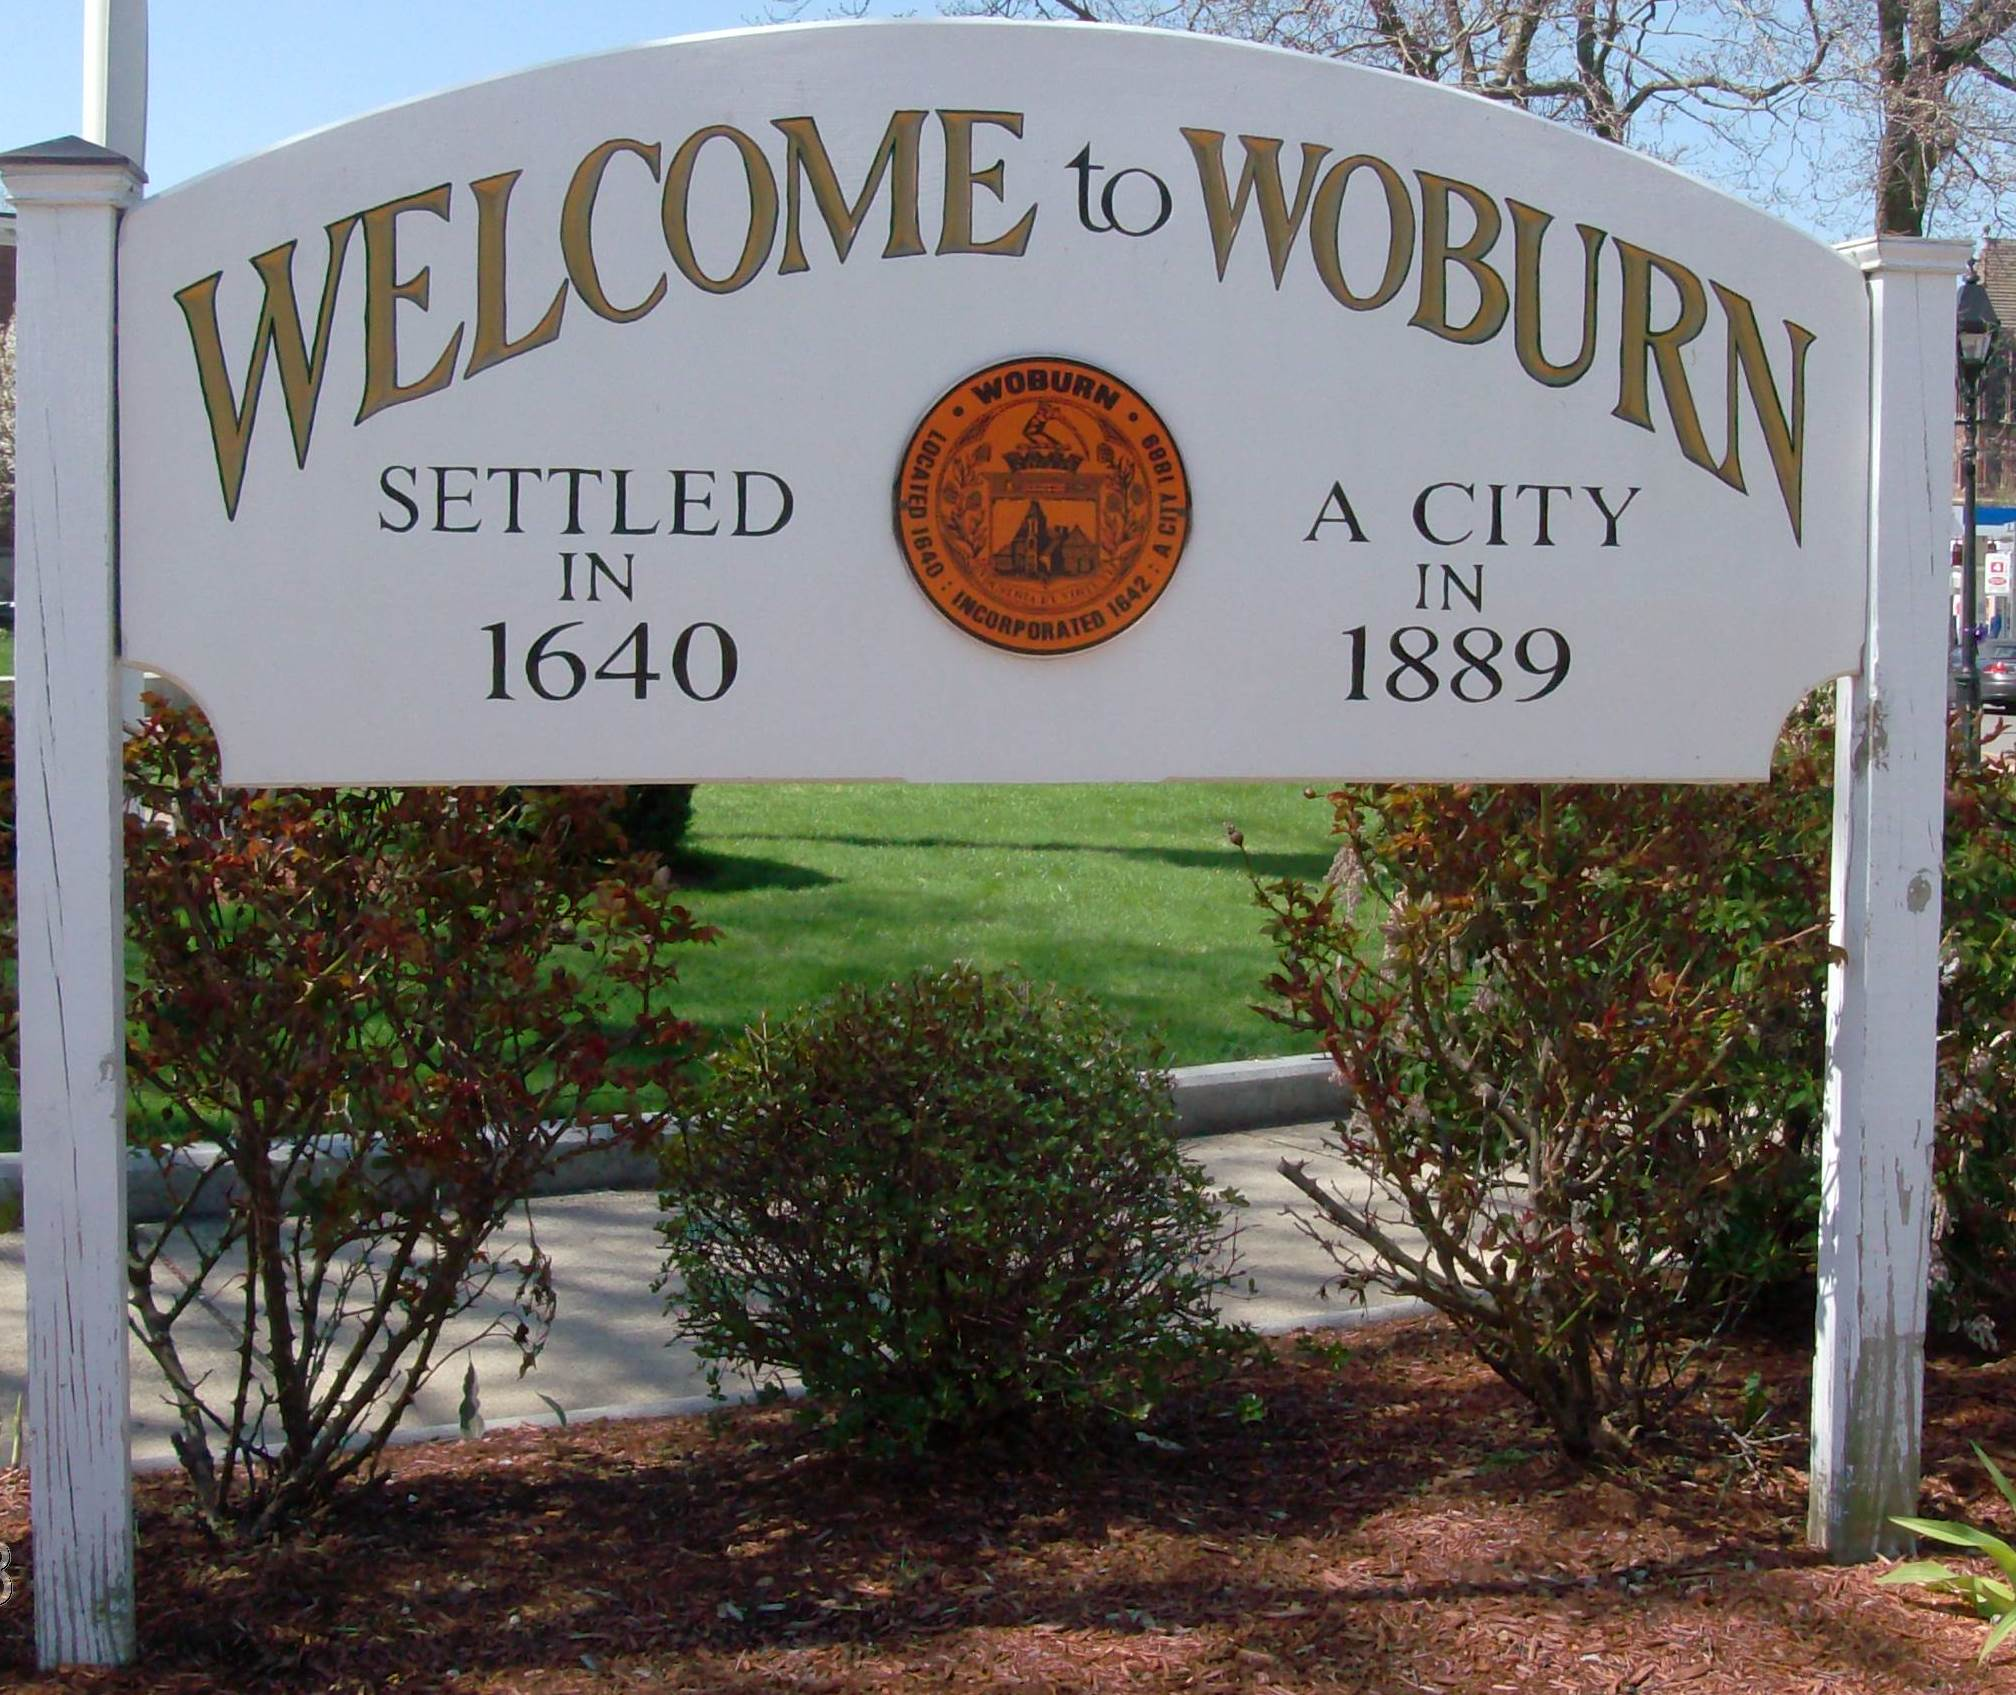 If you're thinking of moving to Woburn, MA, this suburb guide will give you a run-down of what to expect.